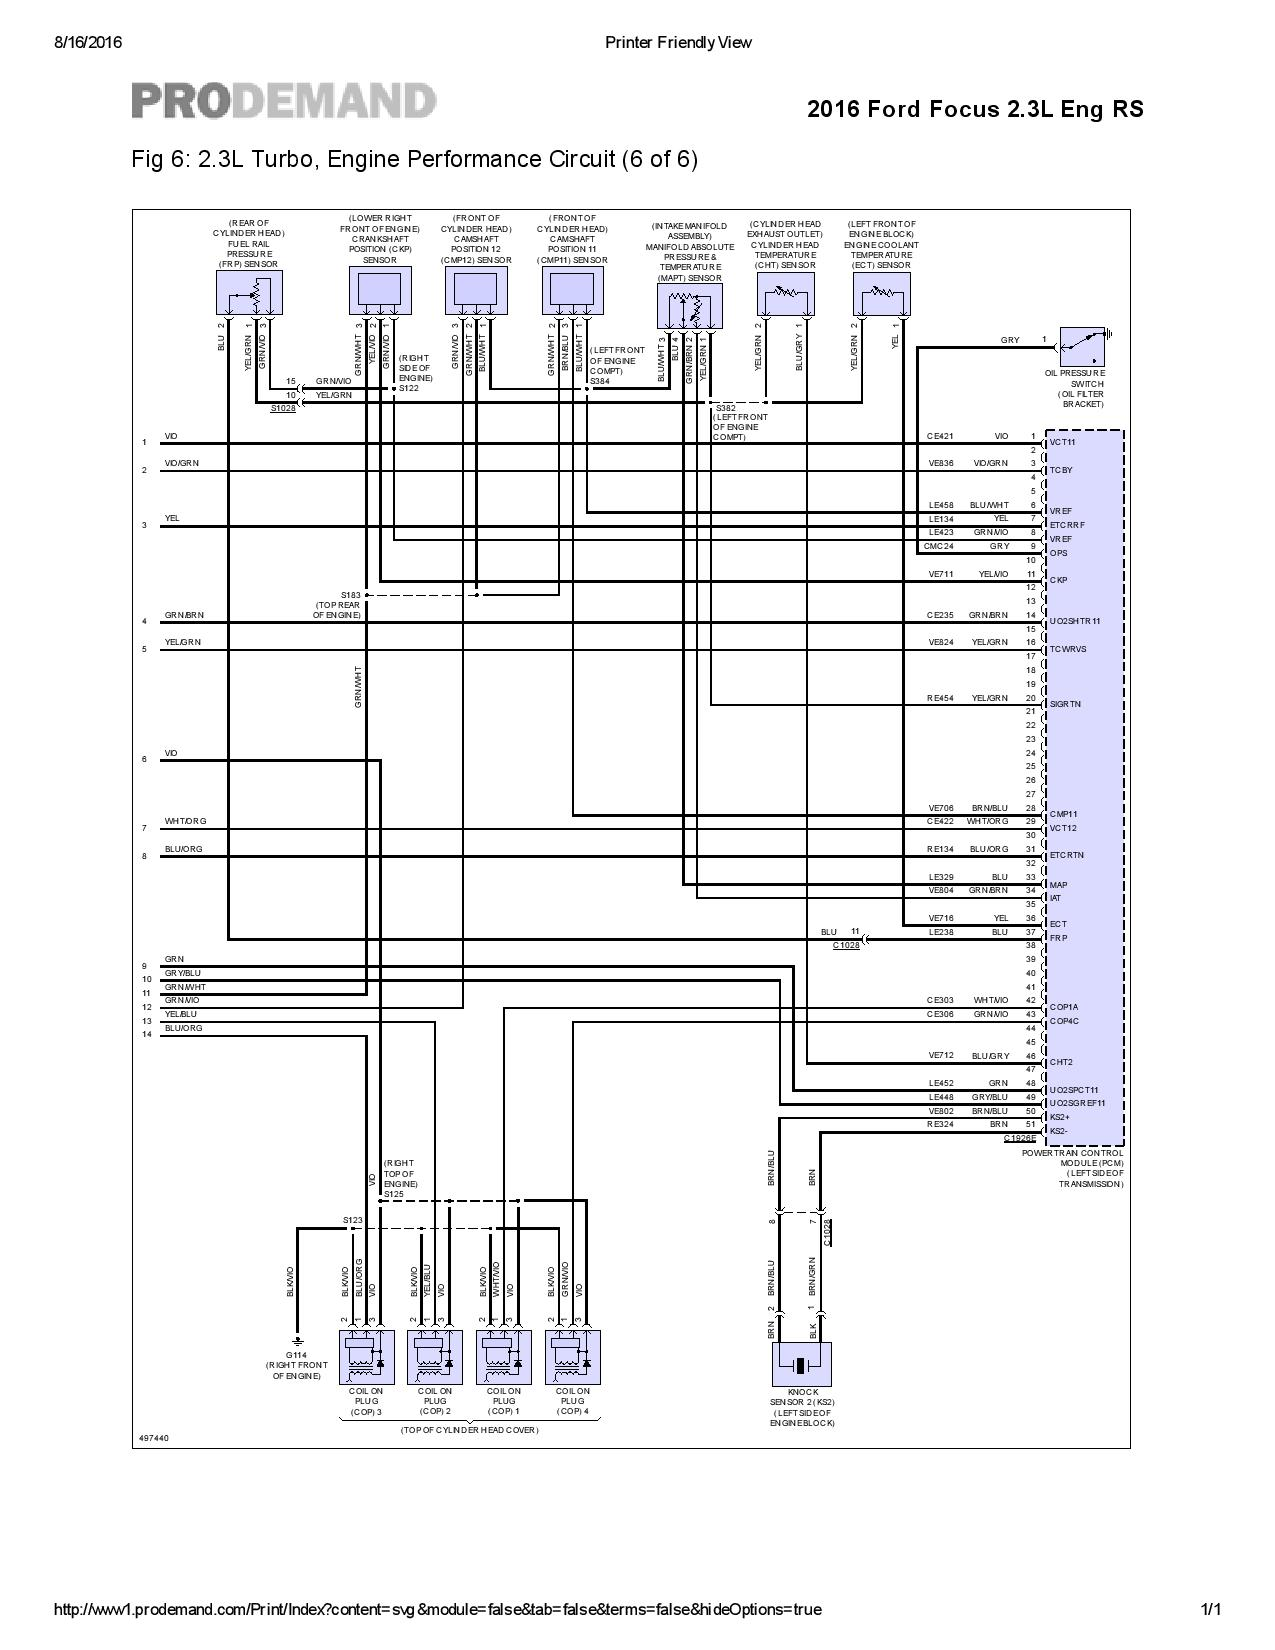 Wiring Manual PDF: 12 Focus Ecm Wiring Diagram